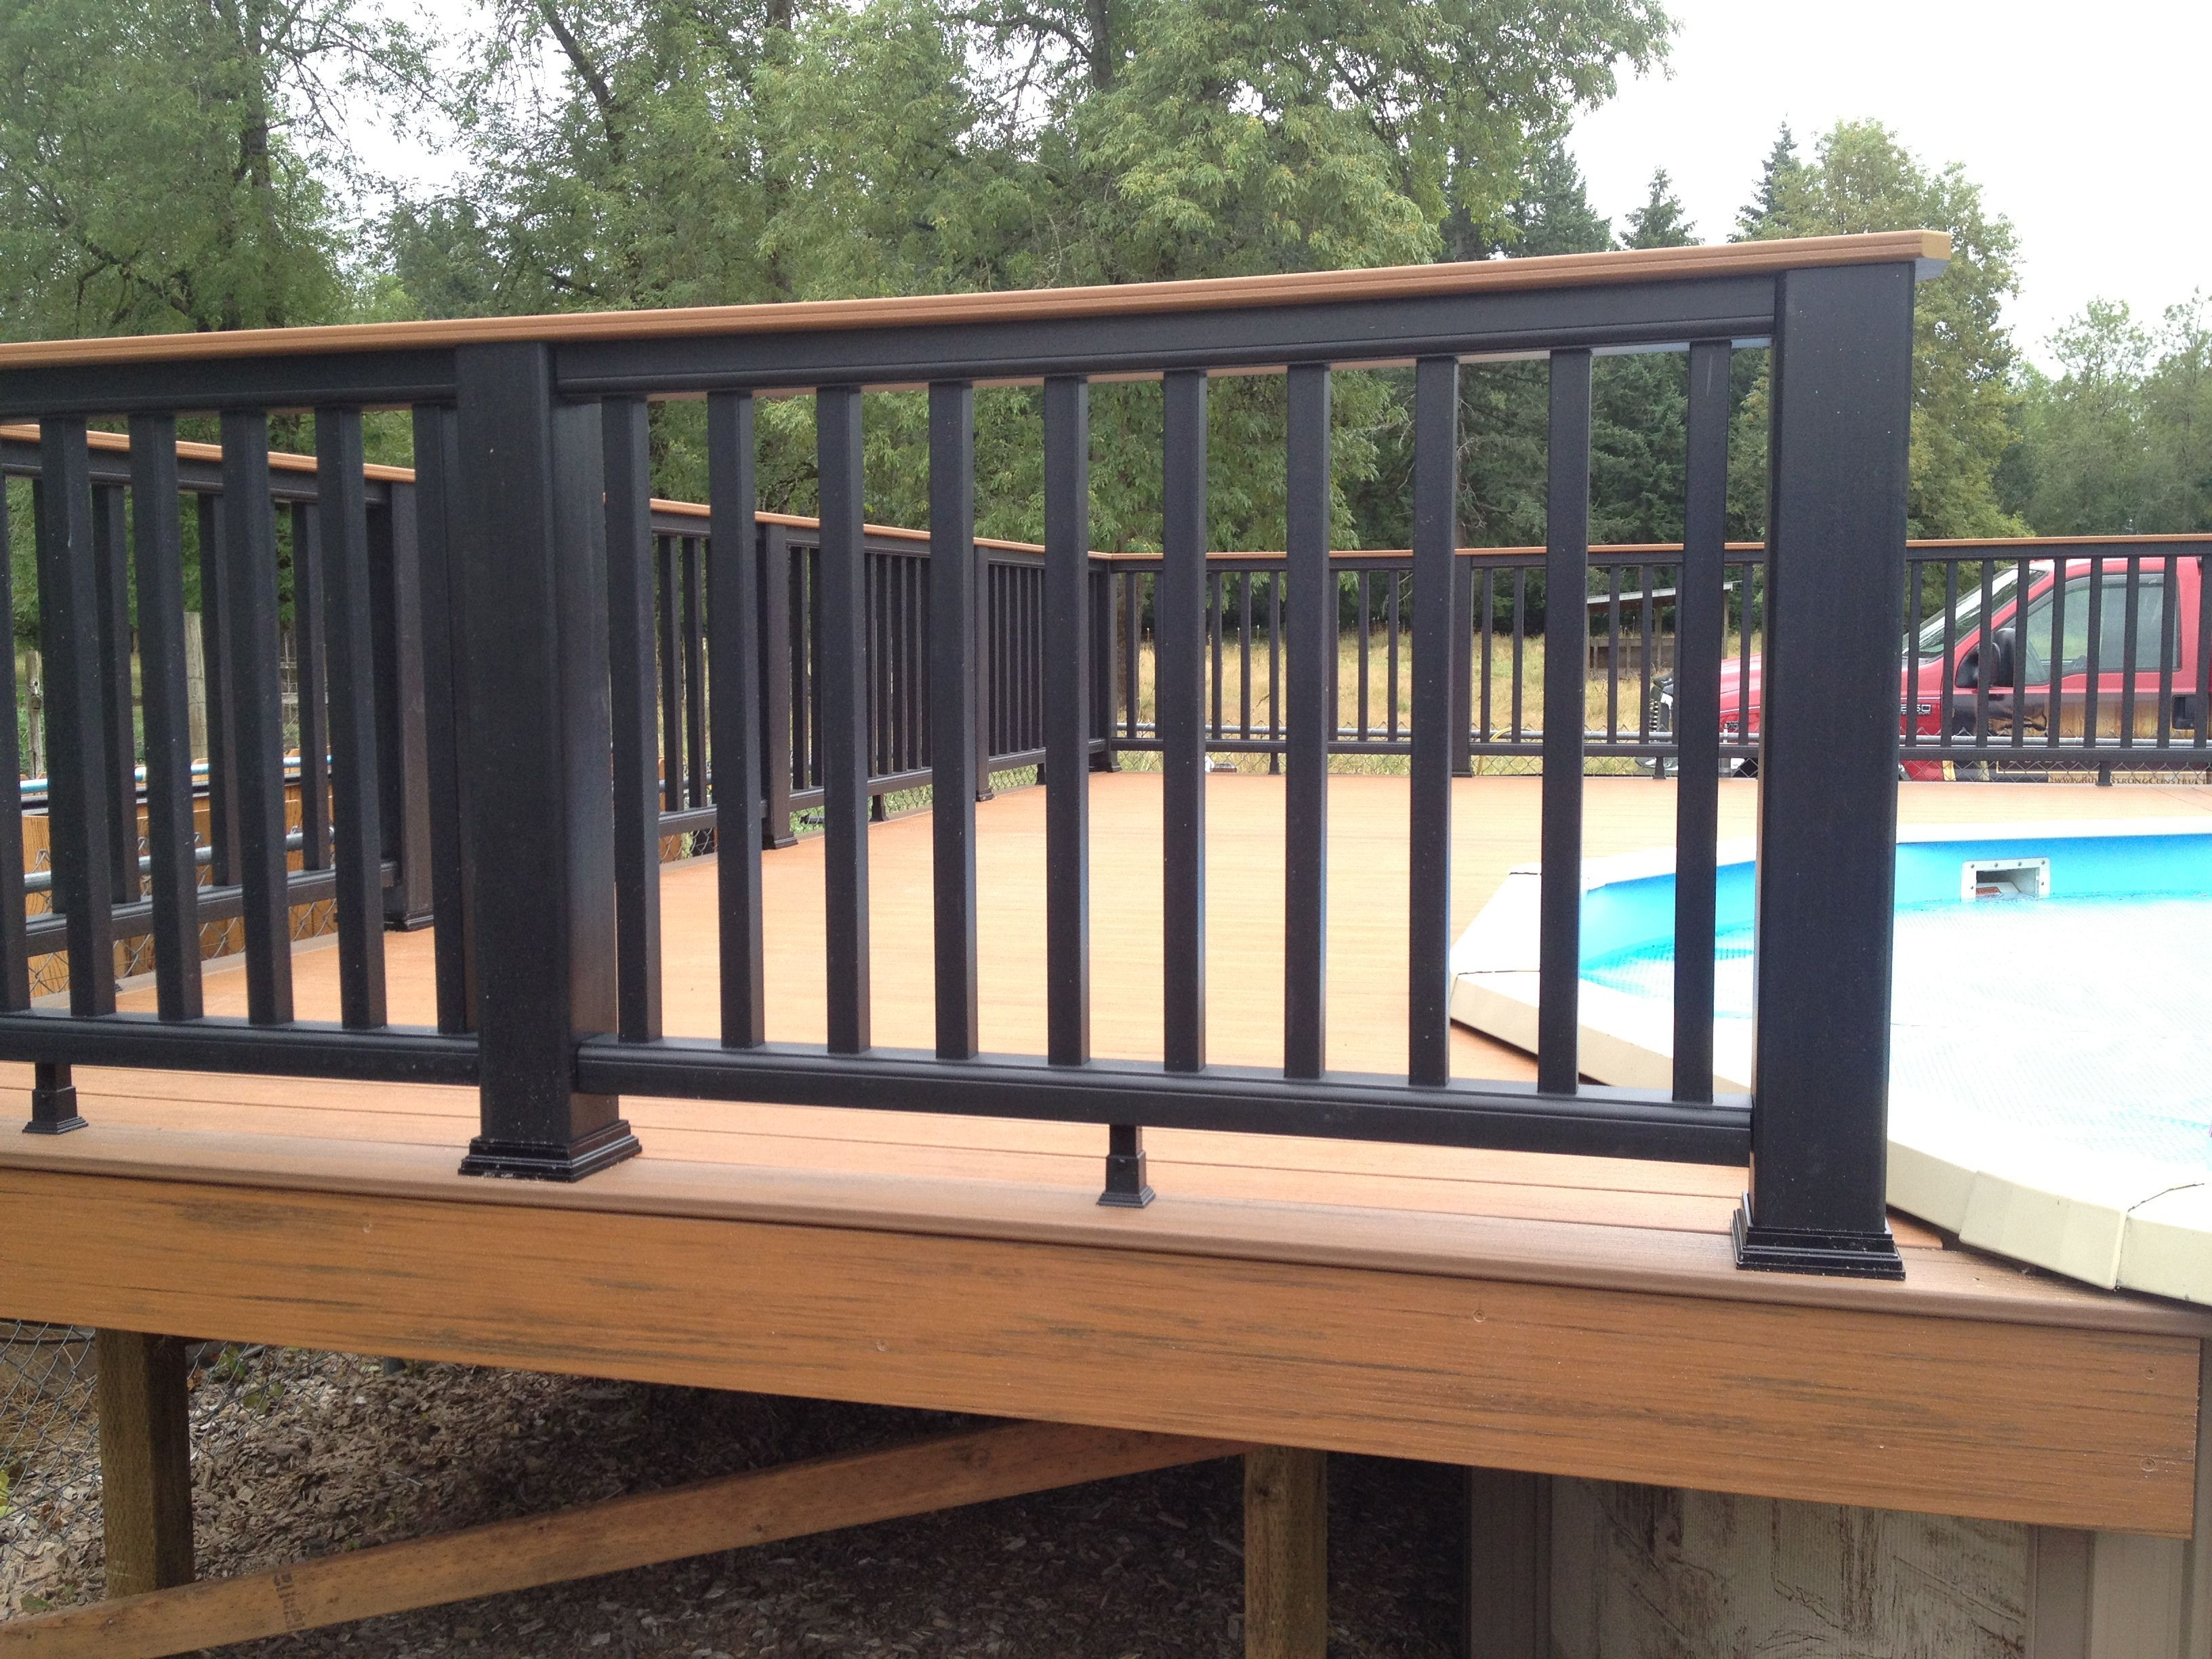 images of timbertech tigerwood and mocha - Google Search | Patios